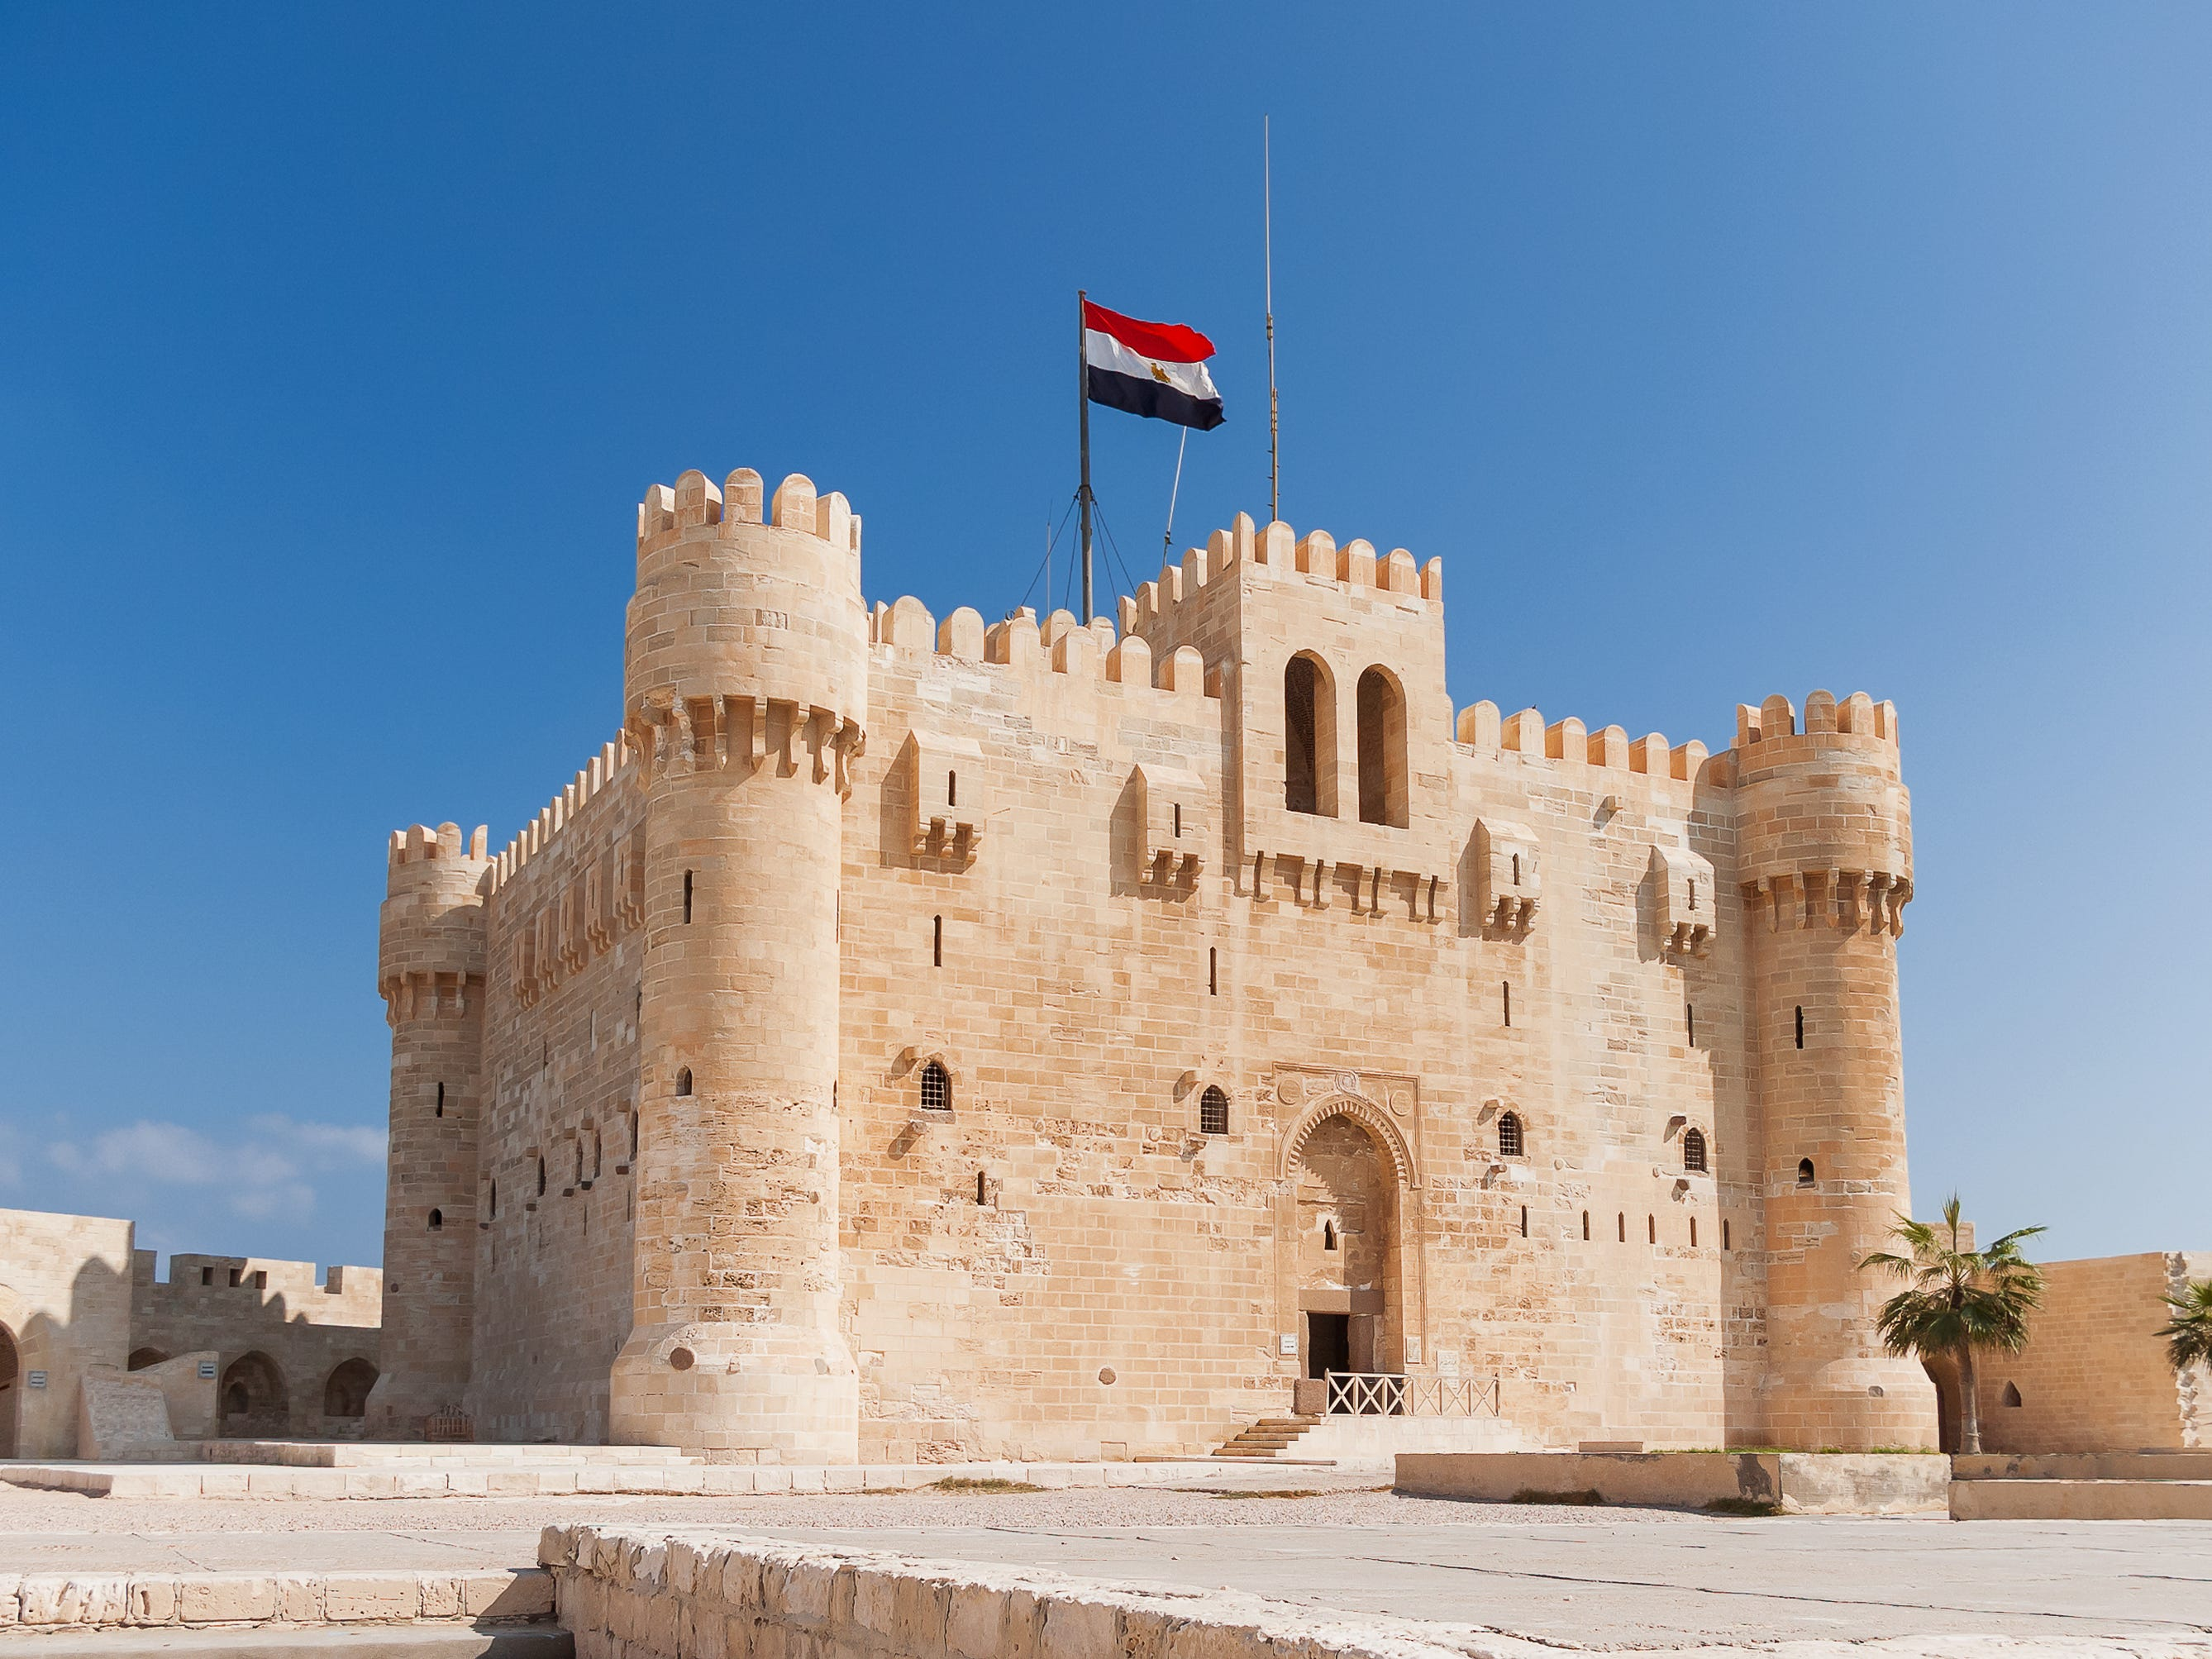 Citadel of Qaitbay in Alexandria, Egypt: On the other side of the Mediterranean, the Citadel of Qaitbay is a sand-colored medieval fortress that was built in the 14th century to withstand attacks from the Ottoman Empire.